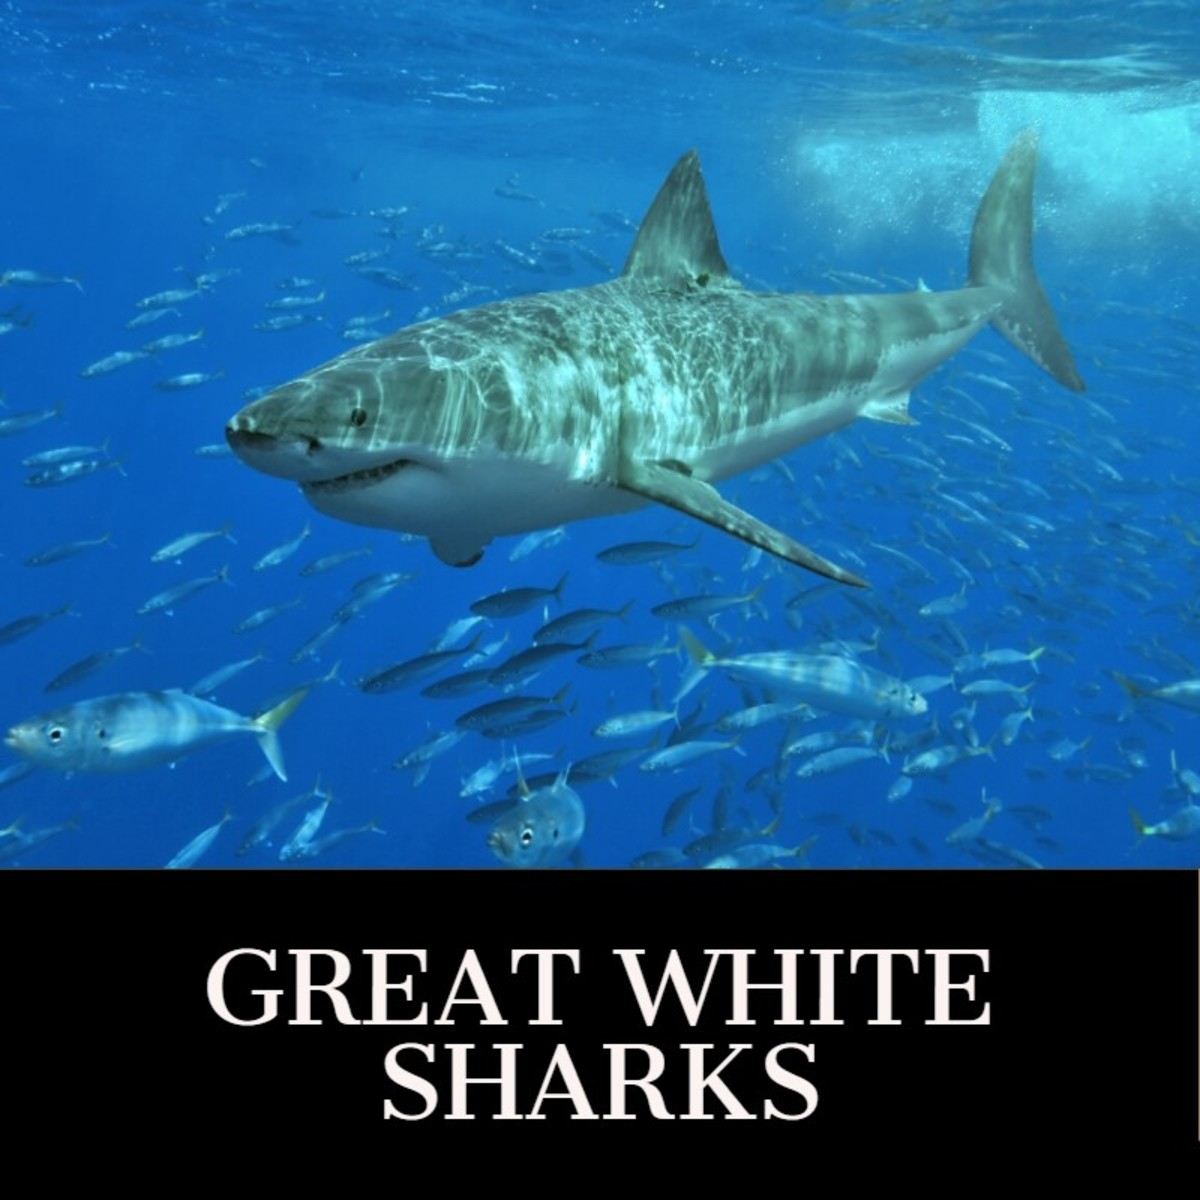 Great White Sharks | Owlcation